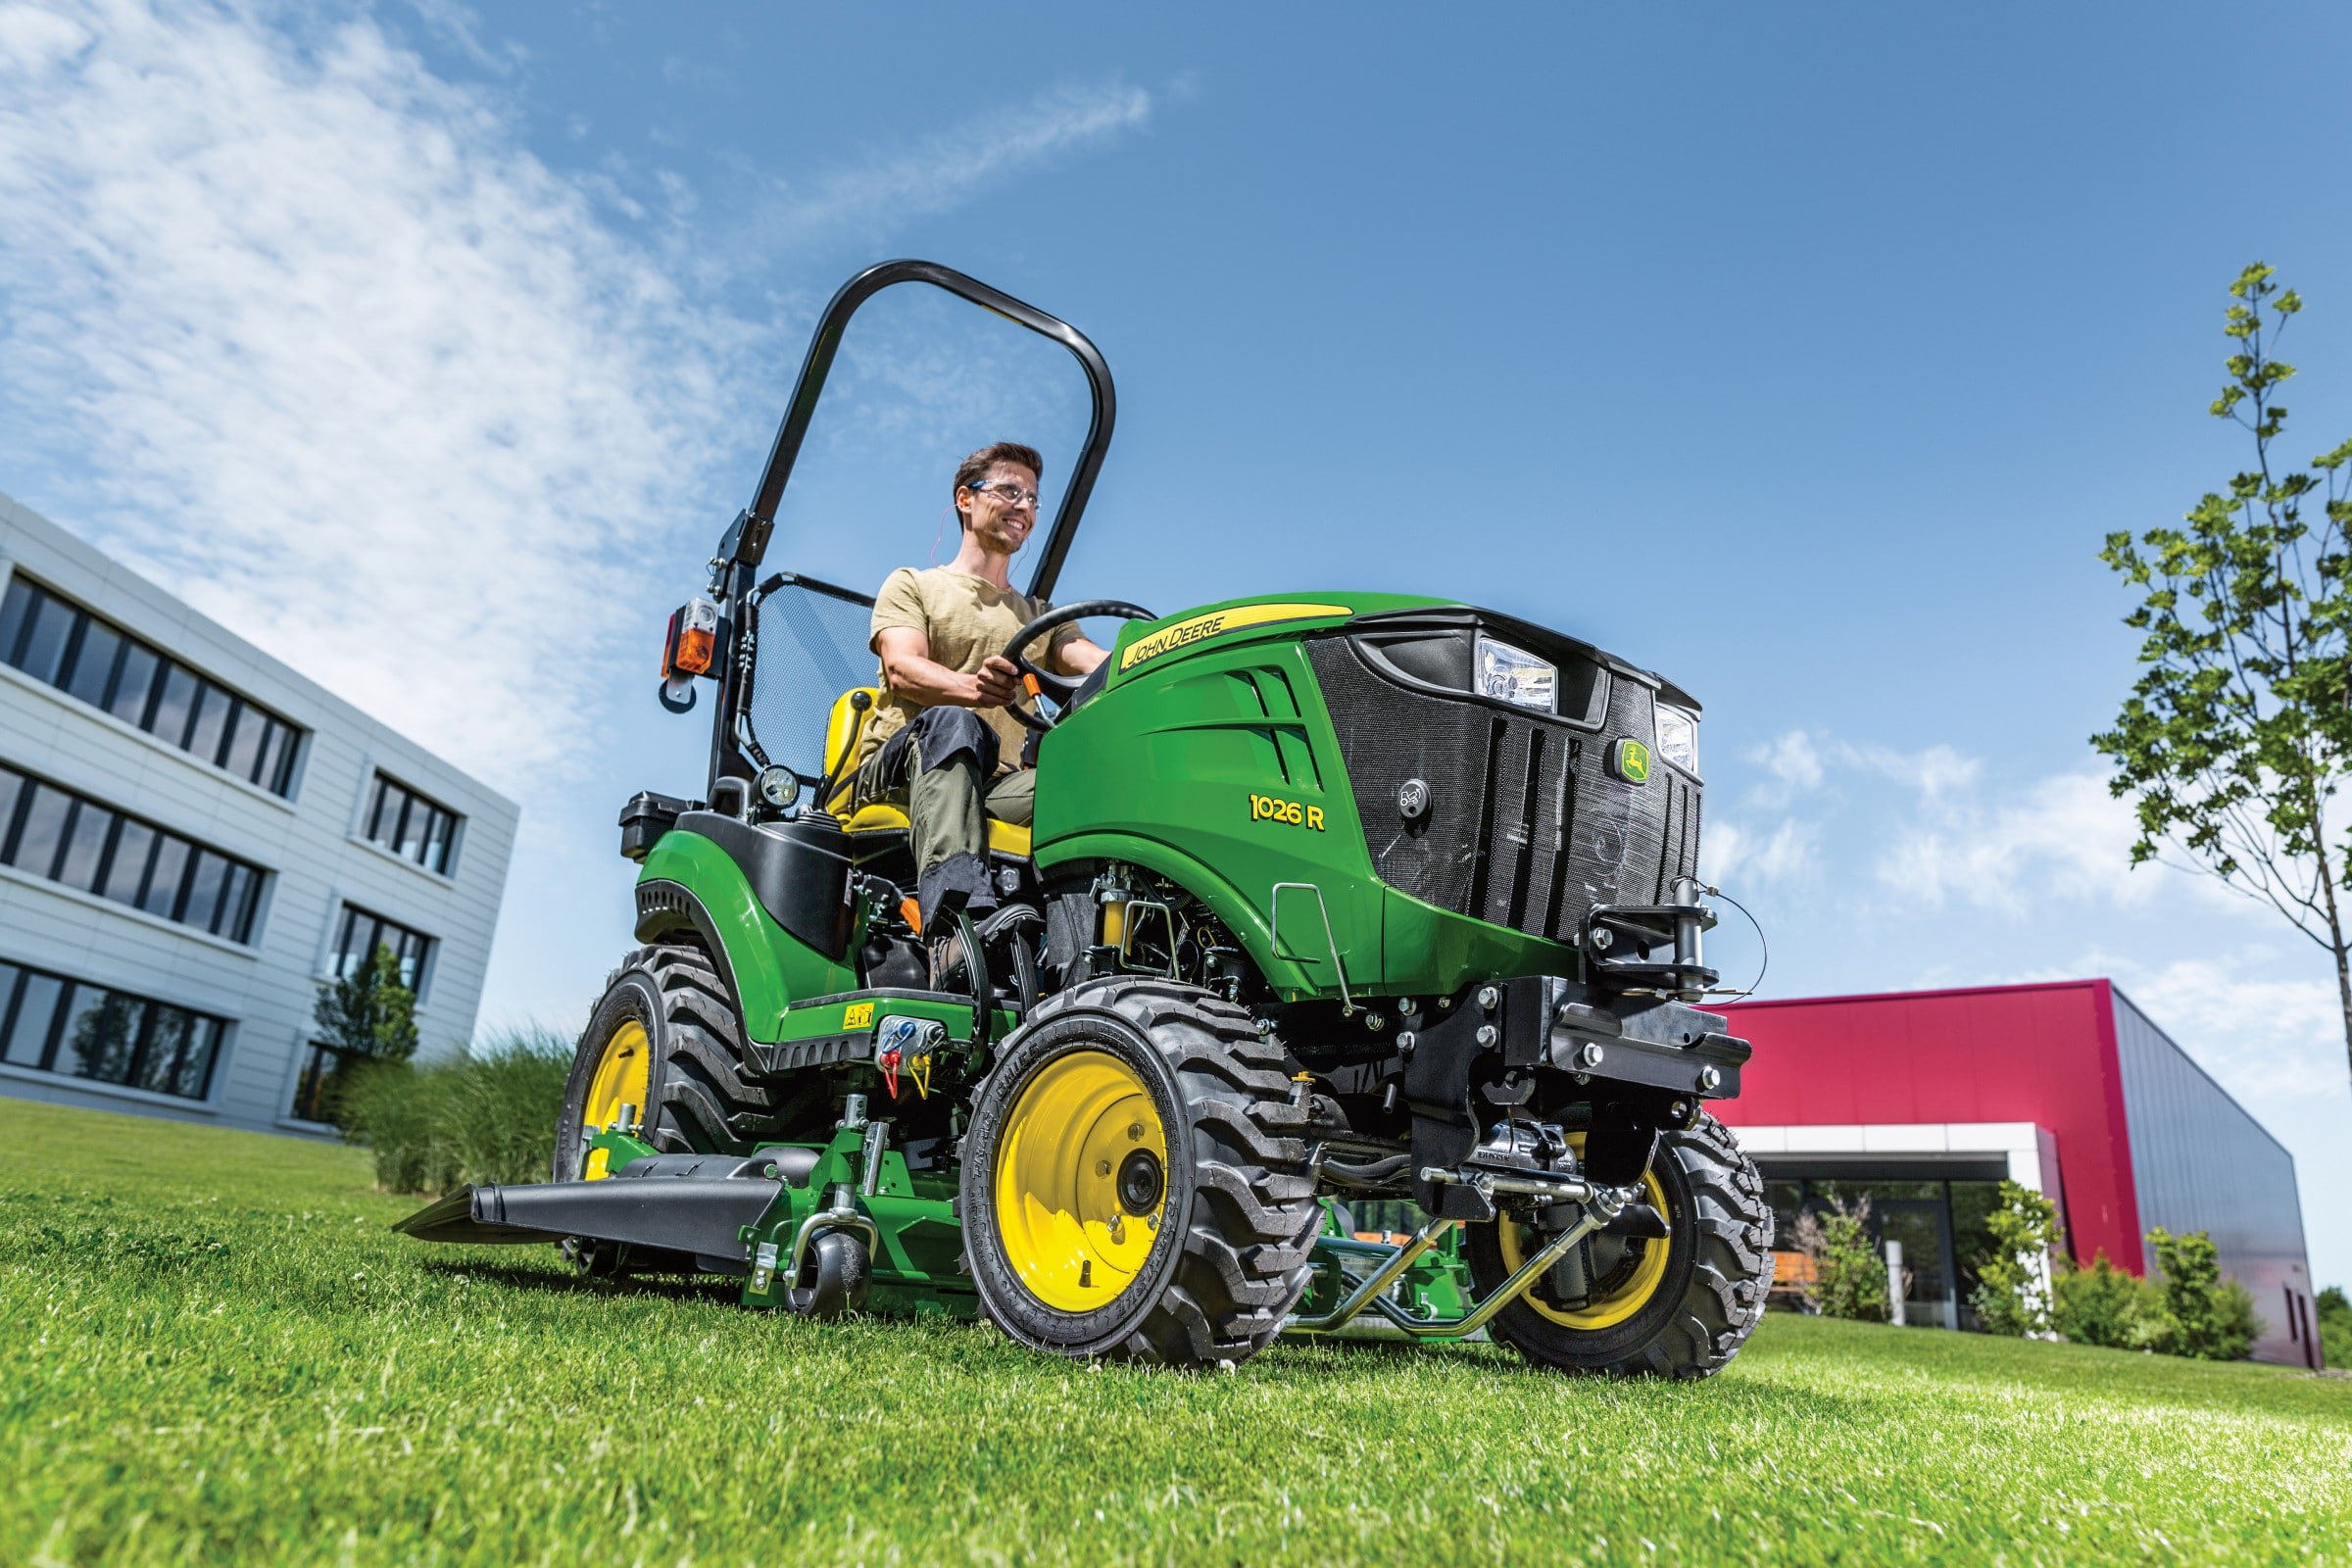 £1 MOWER DECK OFFER WHEN YOU BUY A 1026R COMPACT TRACTOR